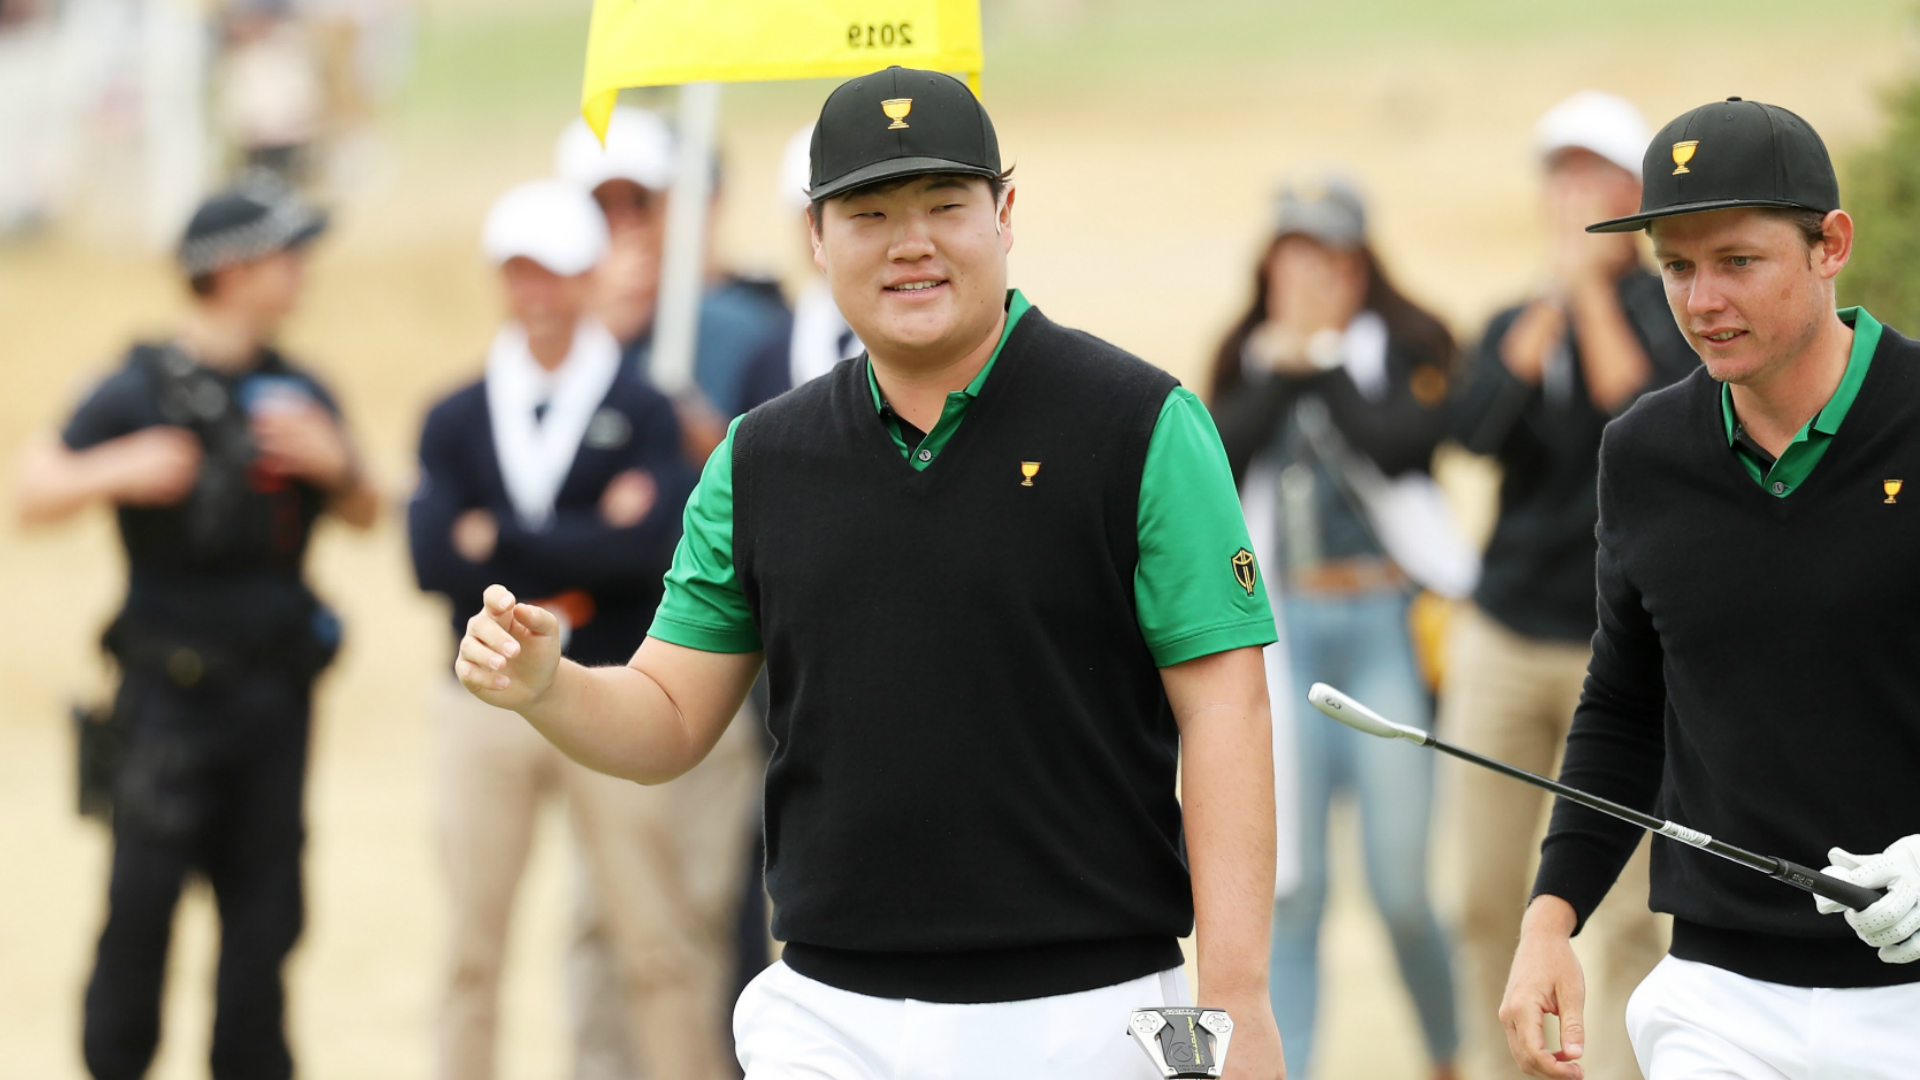 Presidents Cup 2019: Internationals stay hot against Tiger's USA